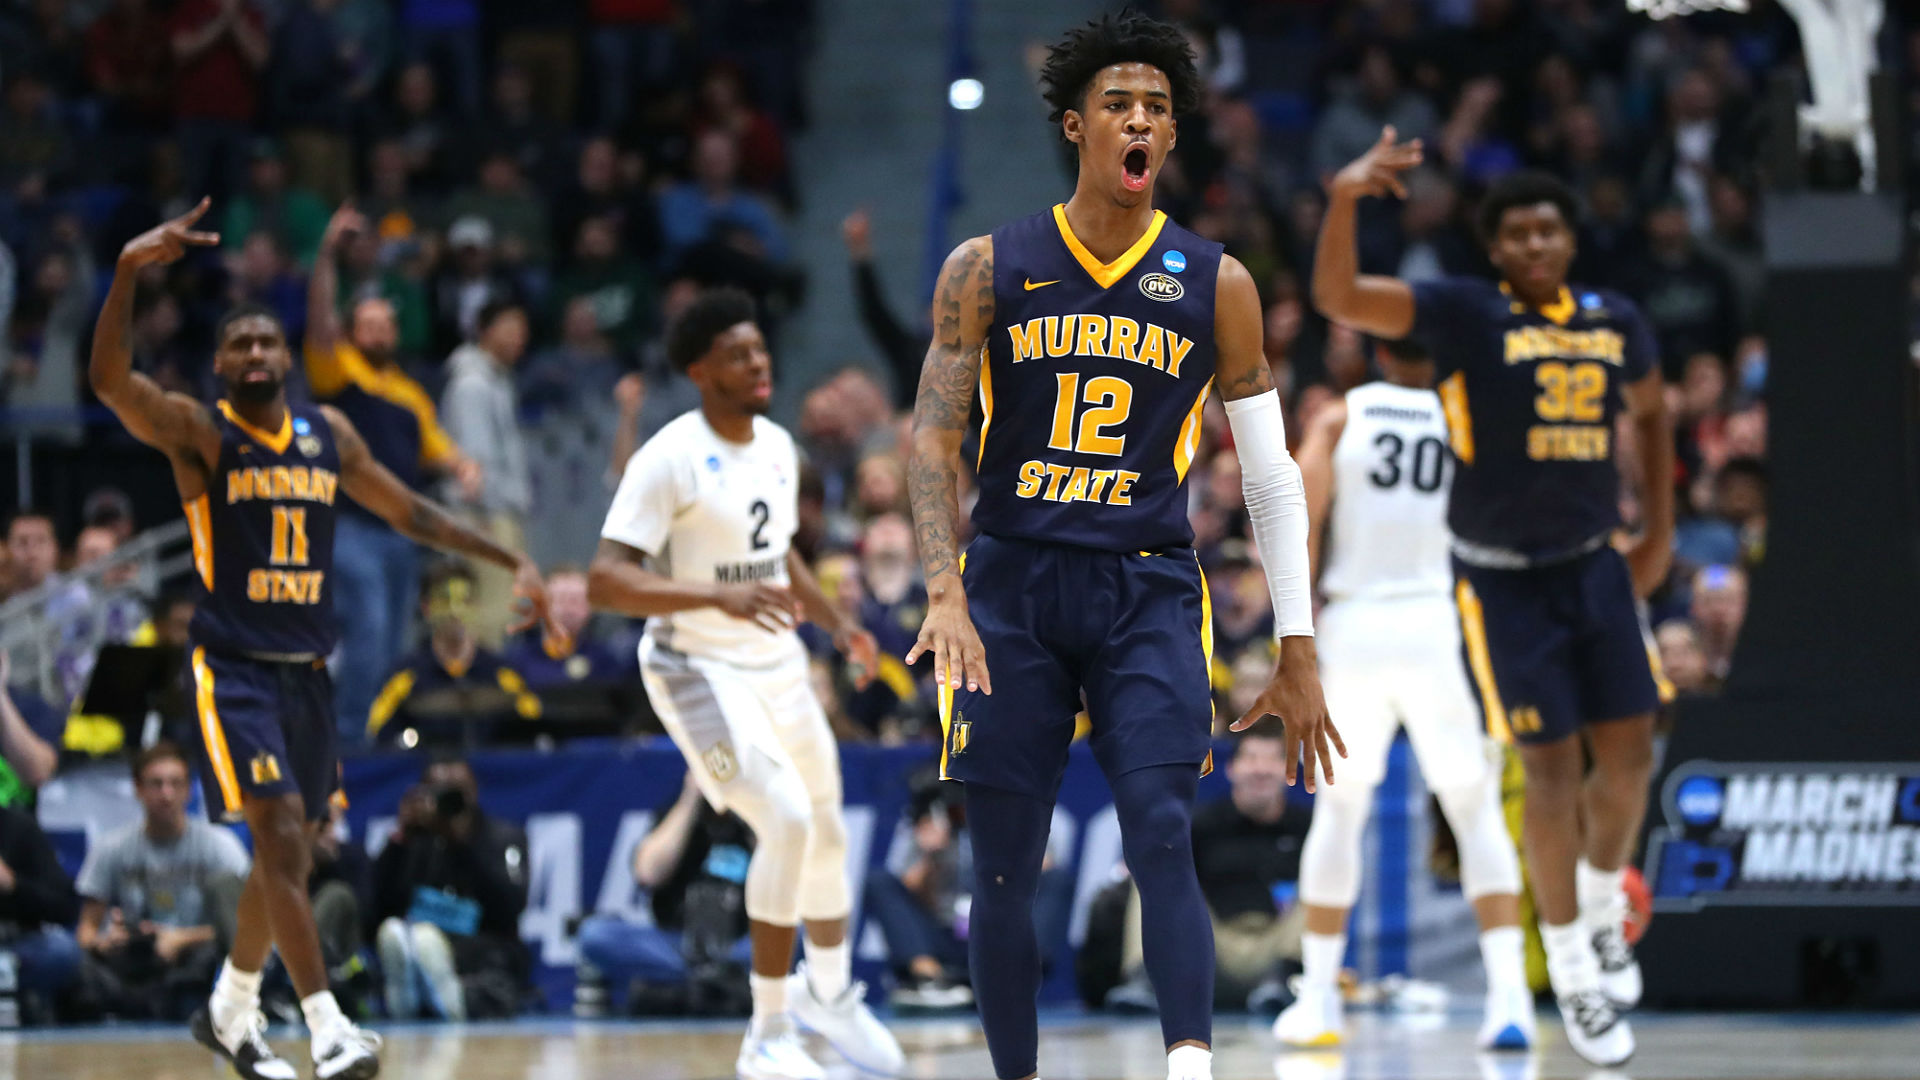 March Madness 2019: Three storylines to follow in Round of 32